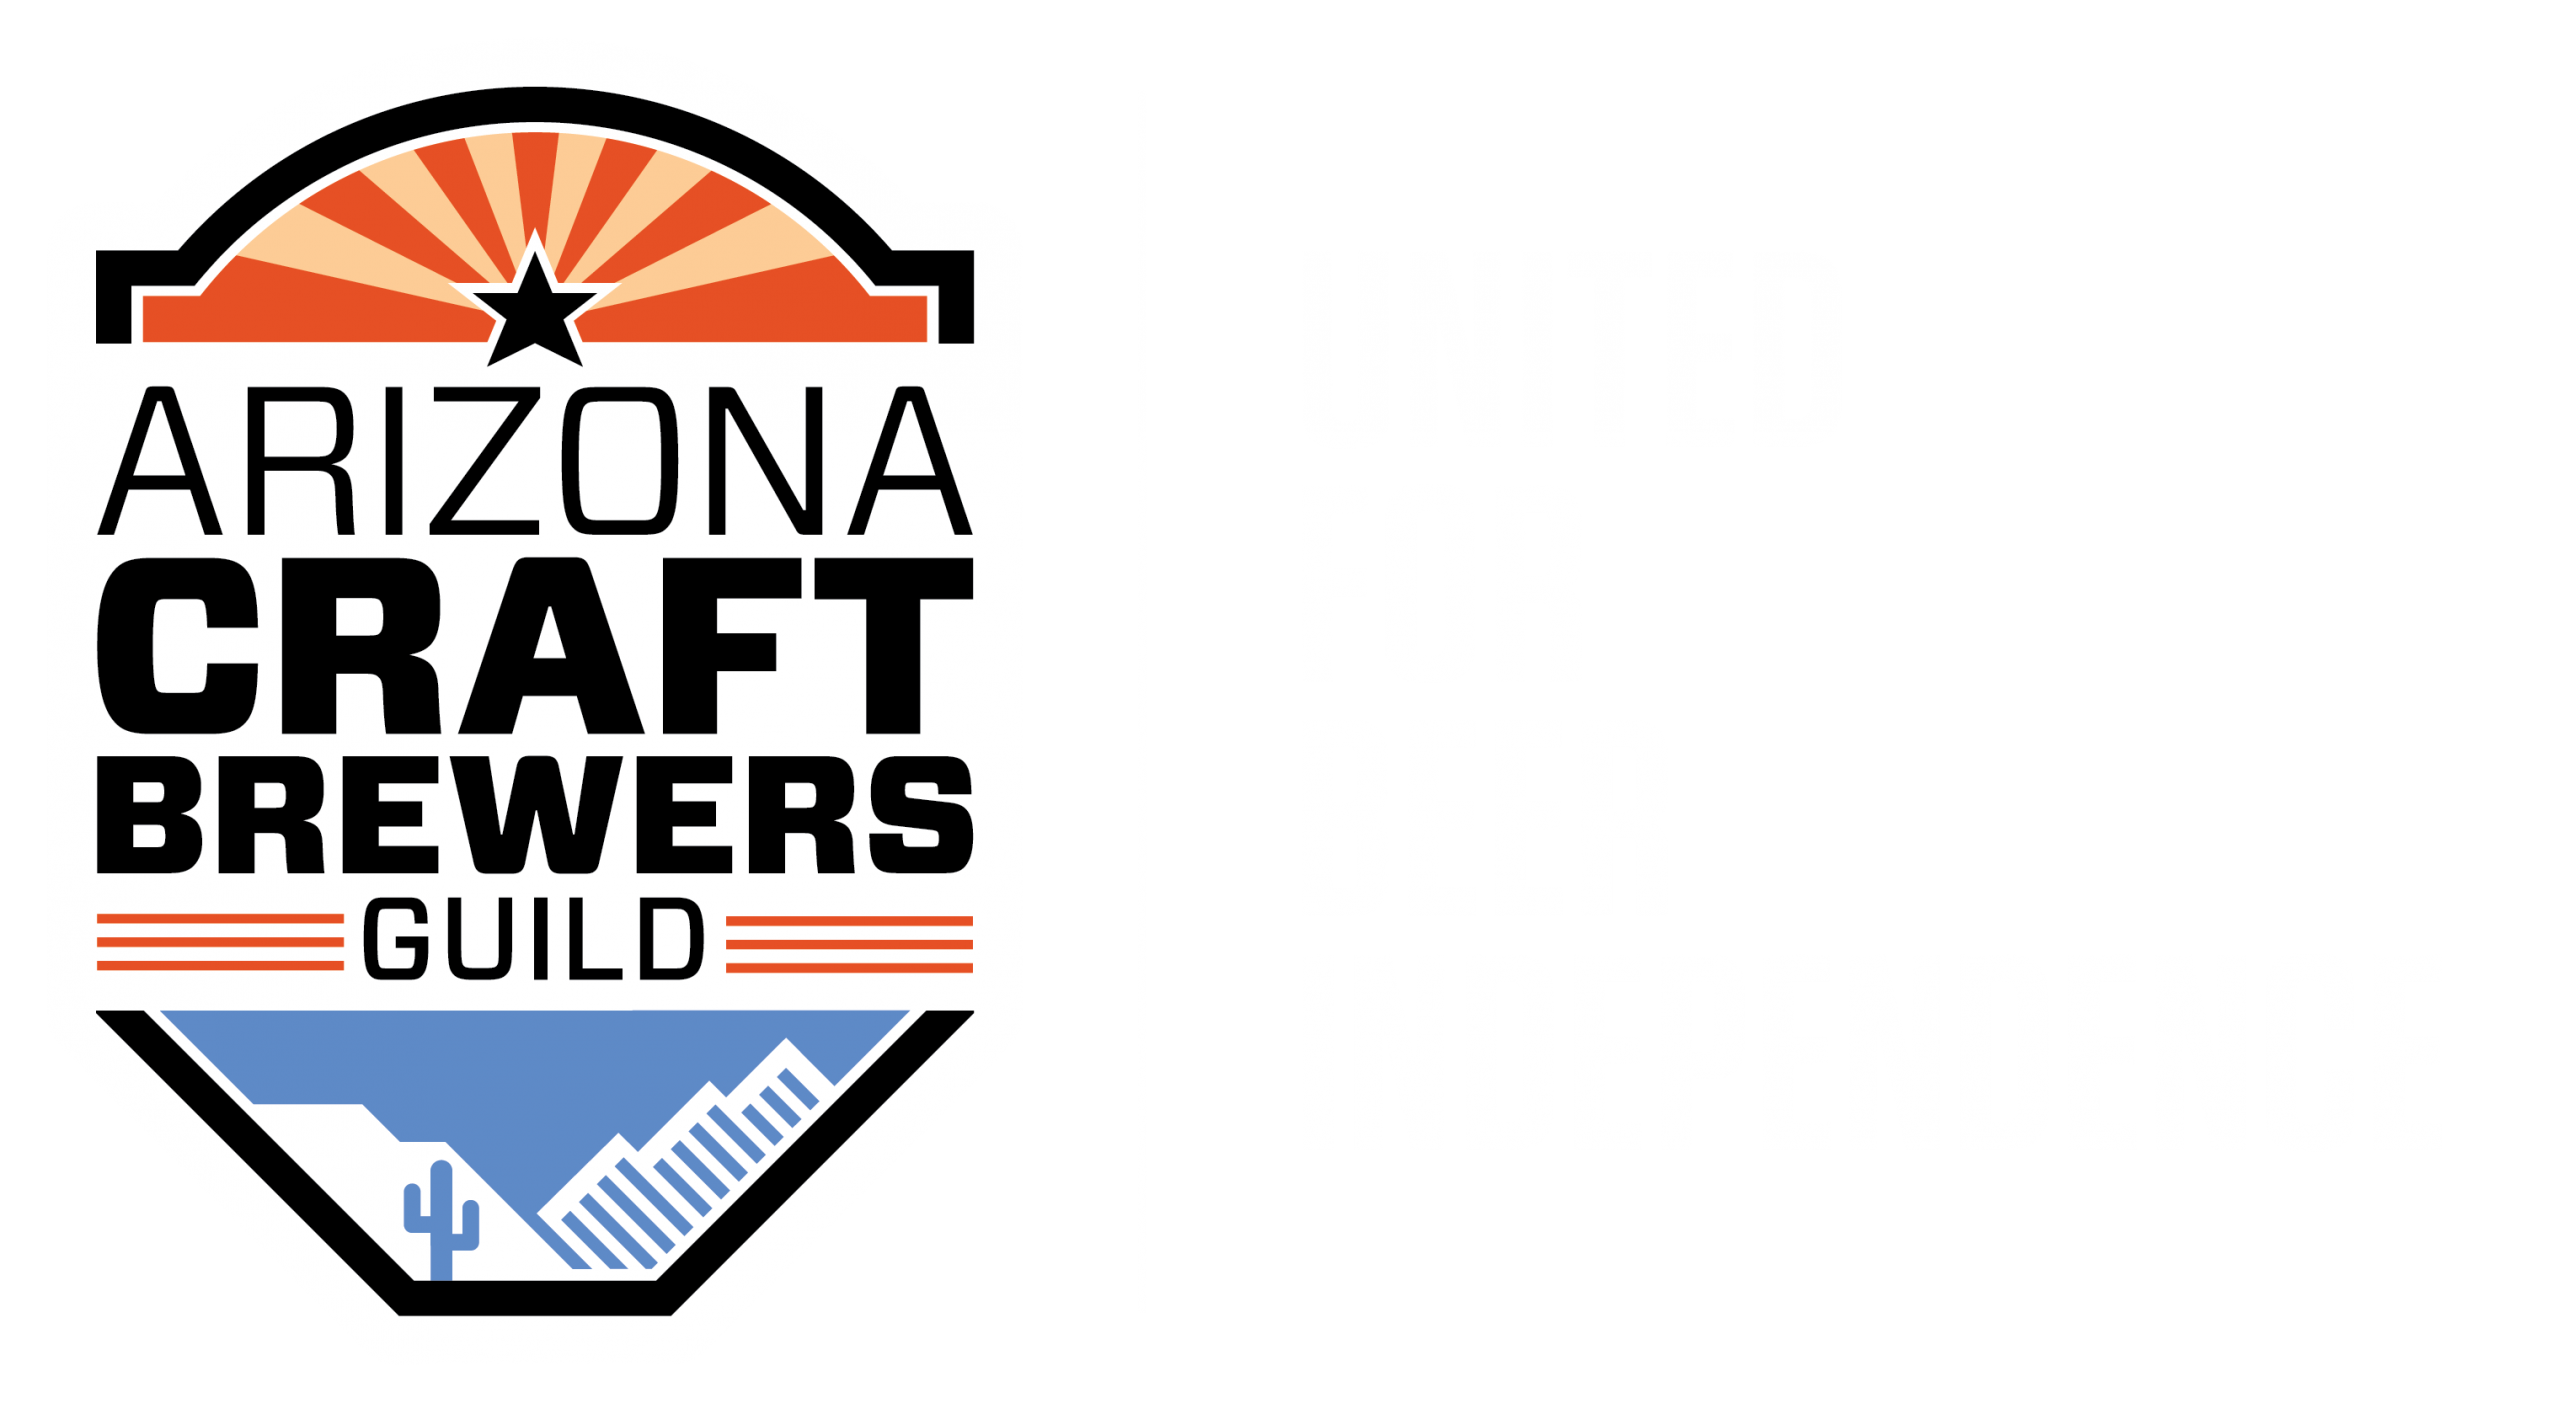 Brewery & Beer List | Arizona Craft Brewers Guild